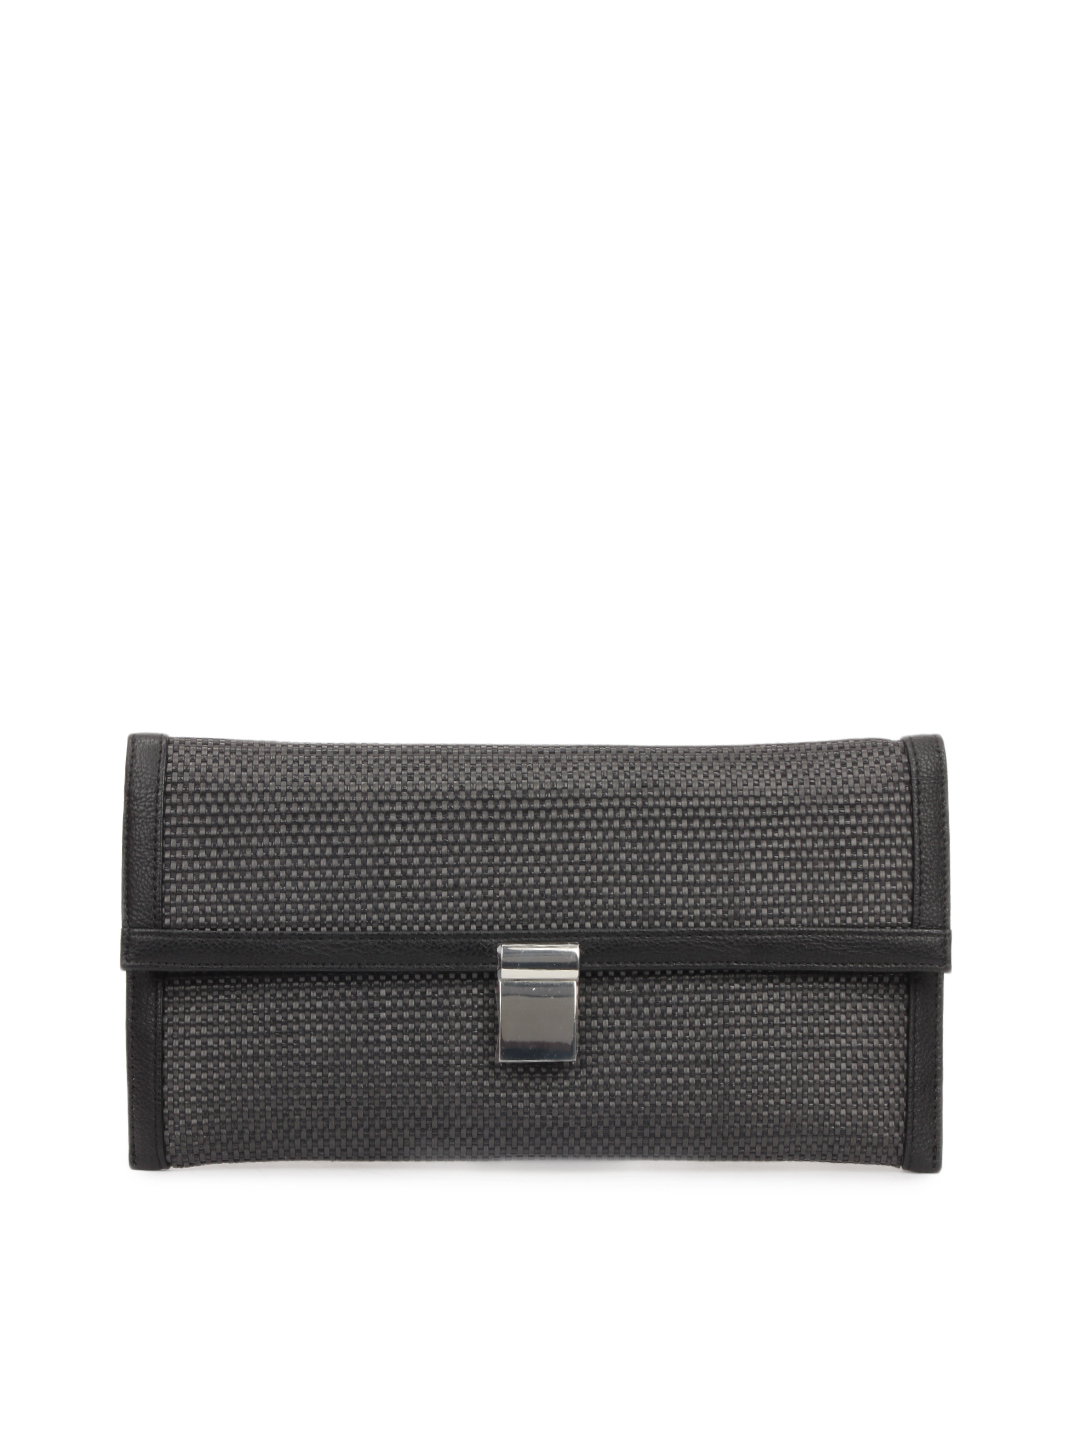 French Connection Women Black Clutch